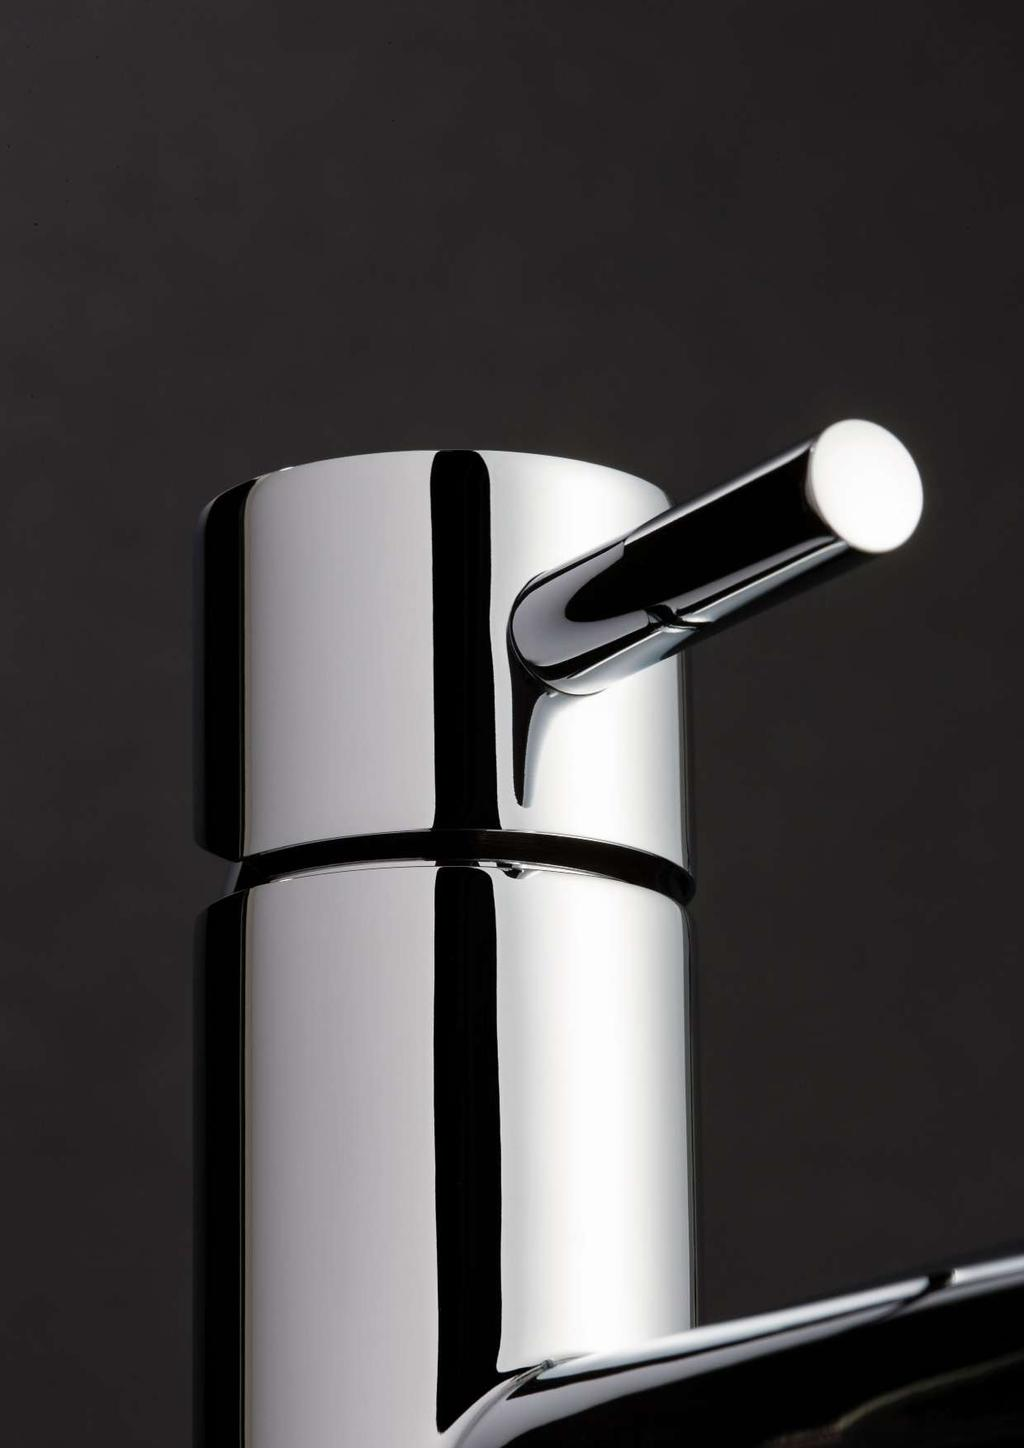 UP TO 40% BASIN TAPS Taps & mixers MPRO BASIN MONOBLOC